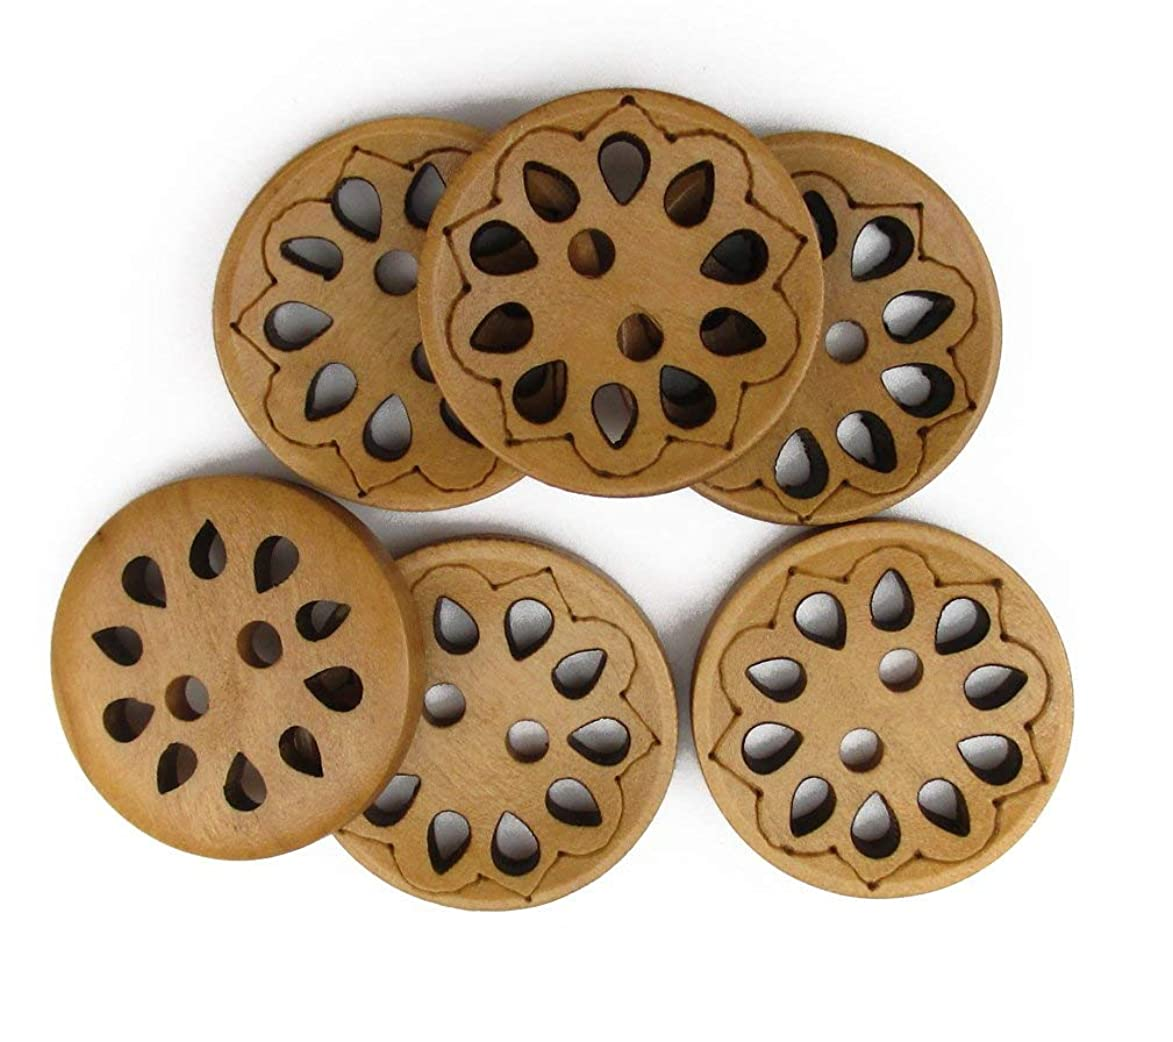 "ALL in ONE 50pcs Light Brown 2 Hole Hollow Drop Shape Sewing Wood Buttons 23mm (7/8"") cxs343227426391"